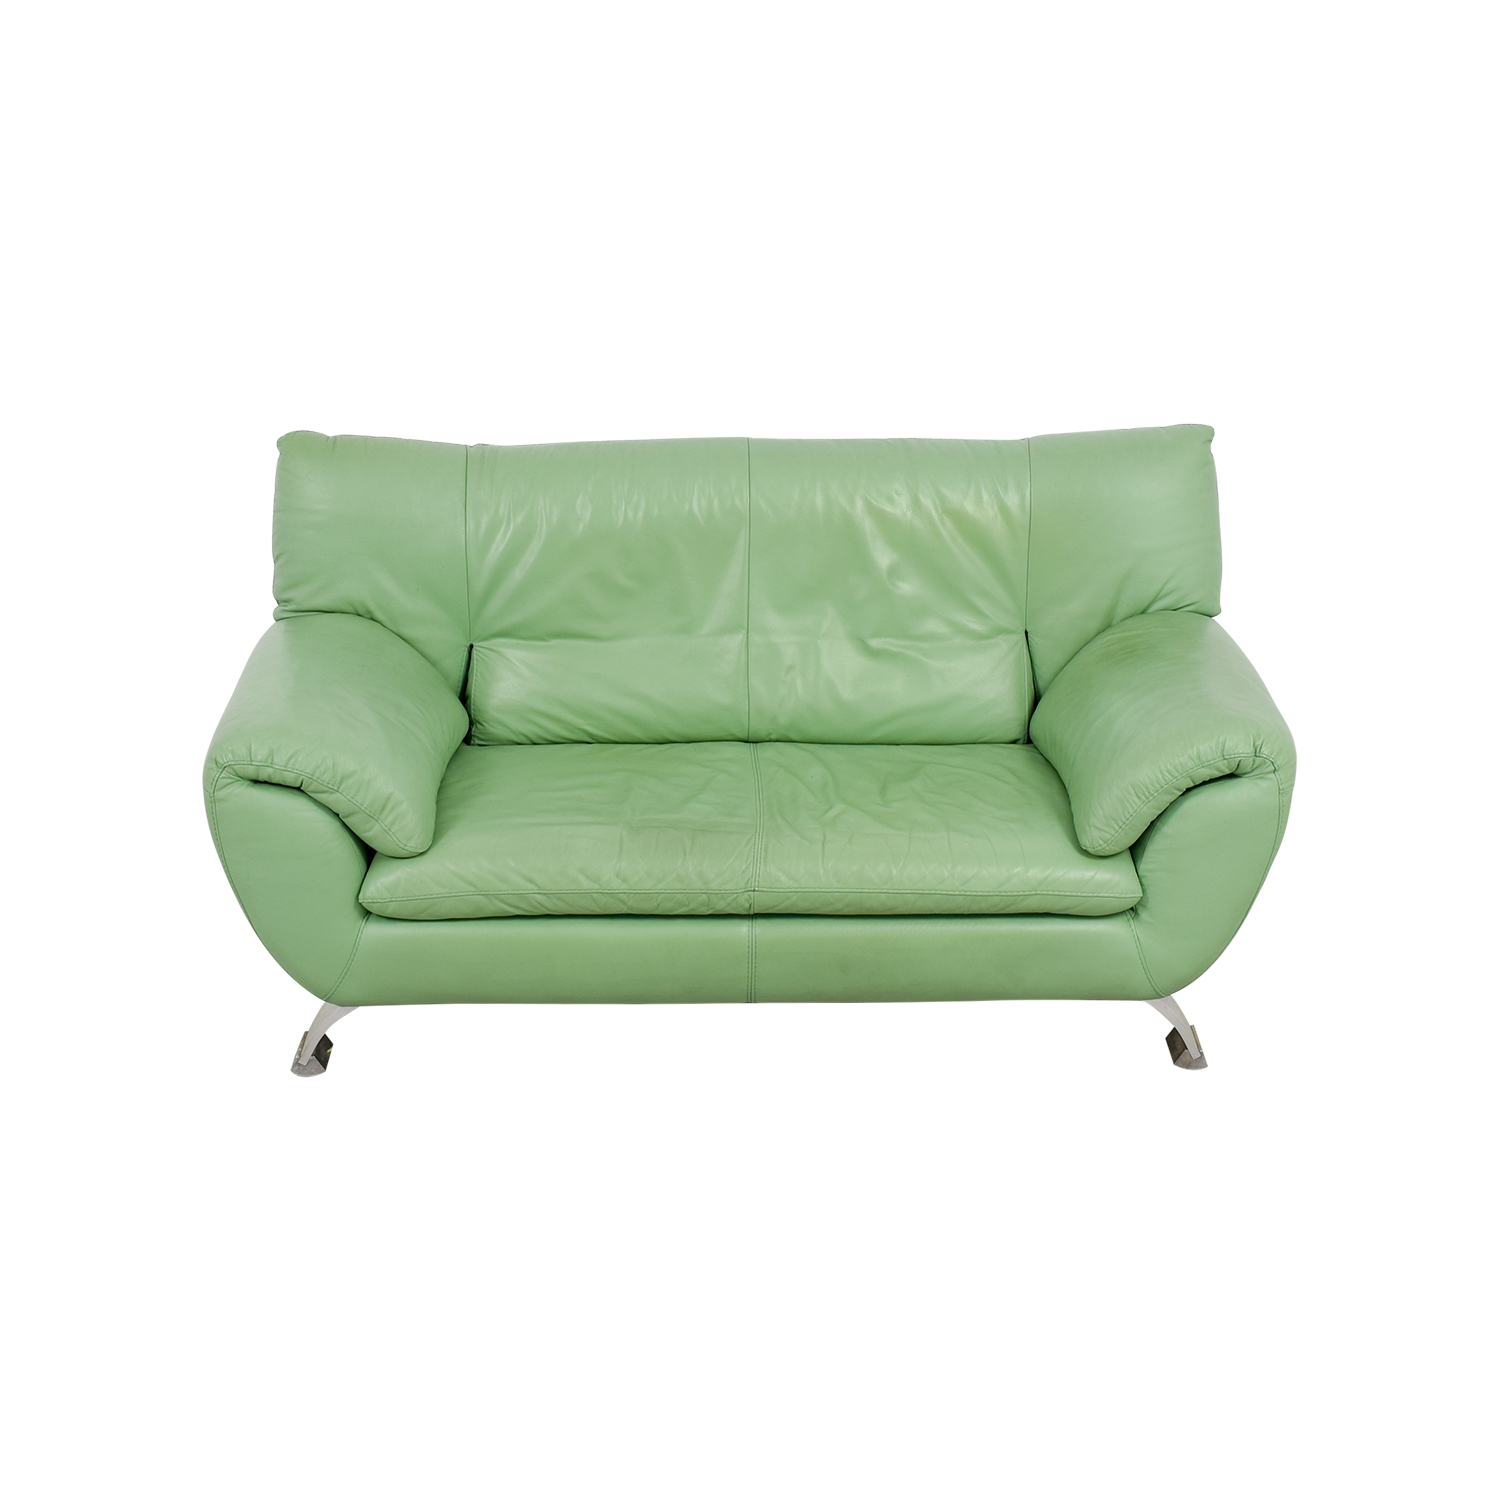 shop Nicoletti Nicoletti Leather Green Sofa online